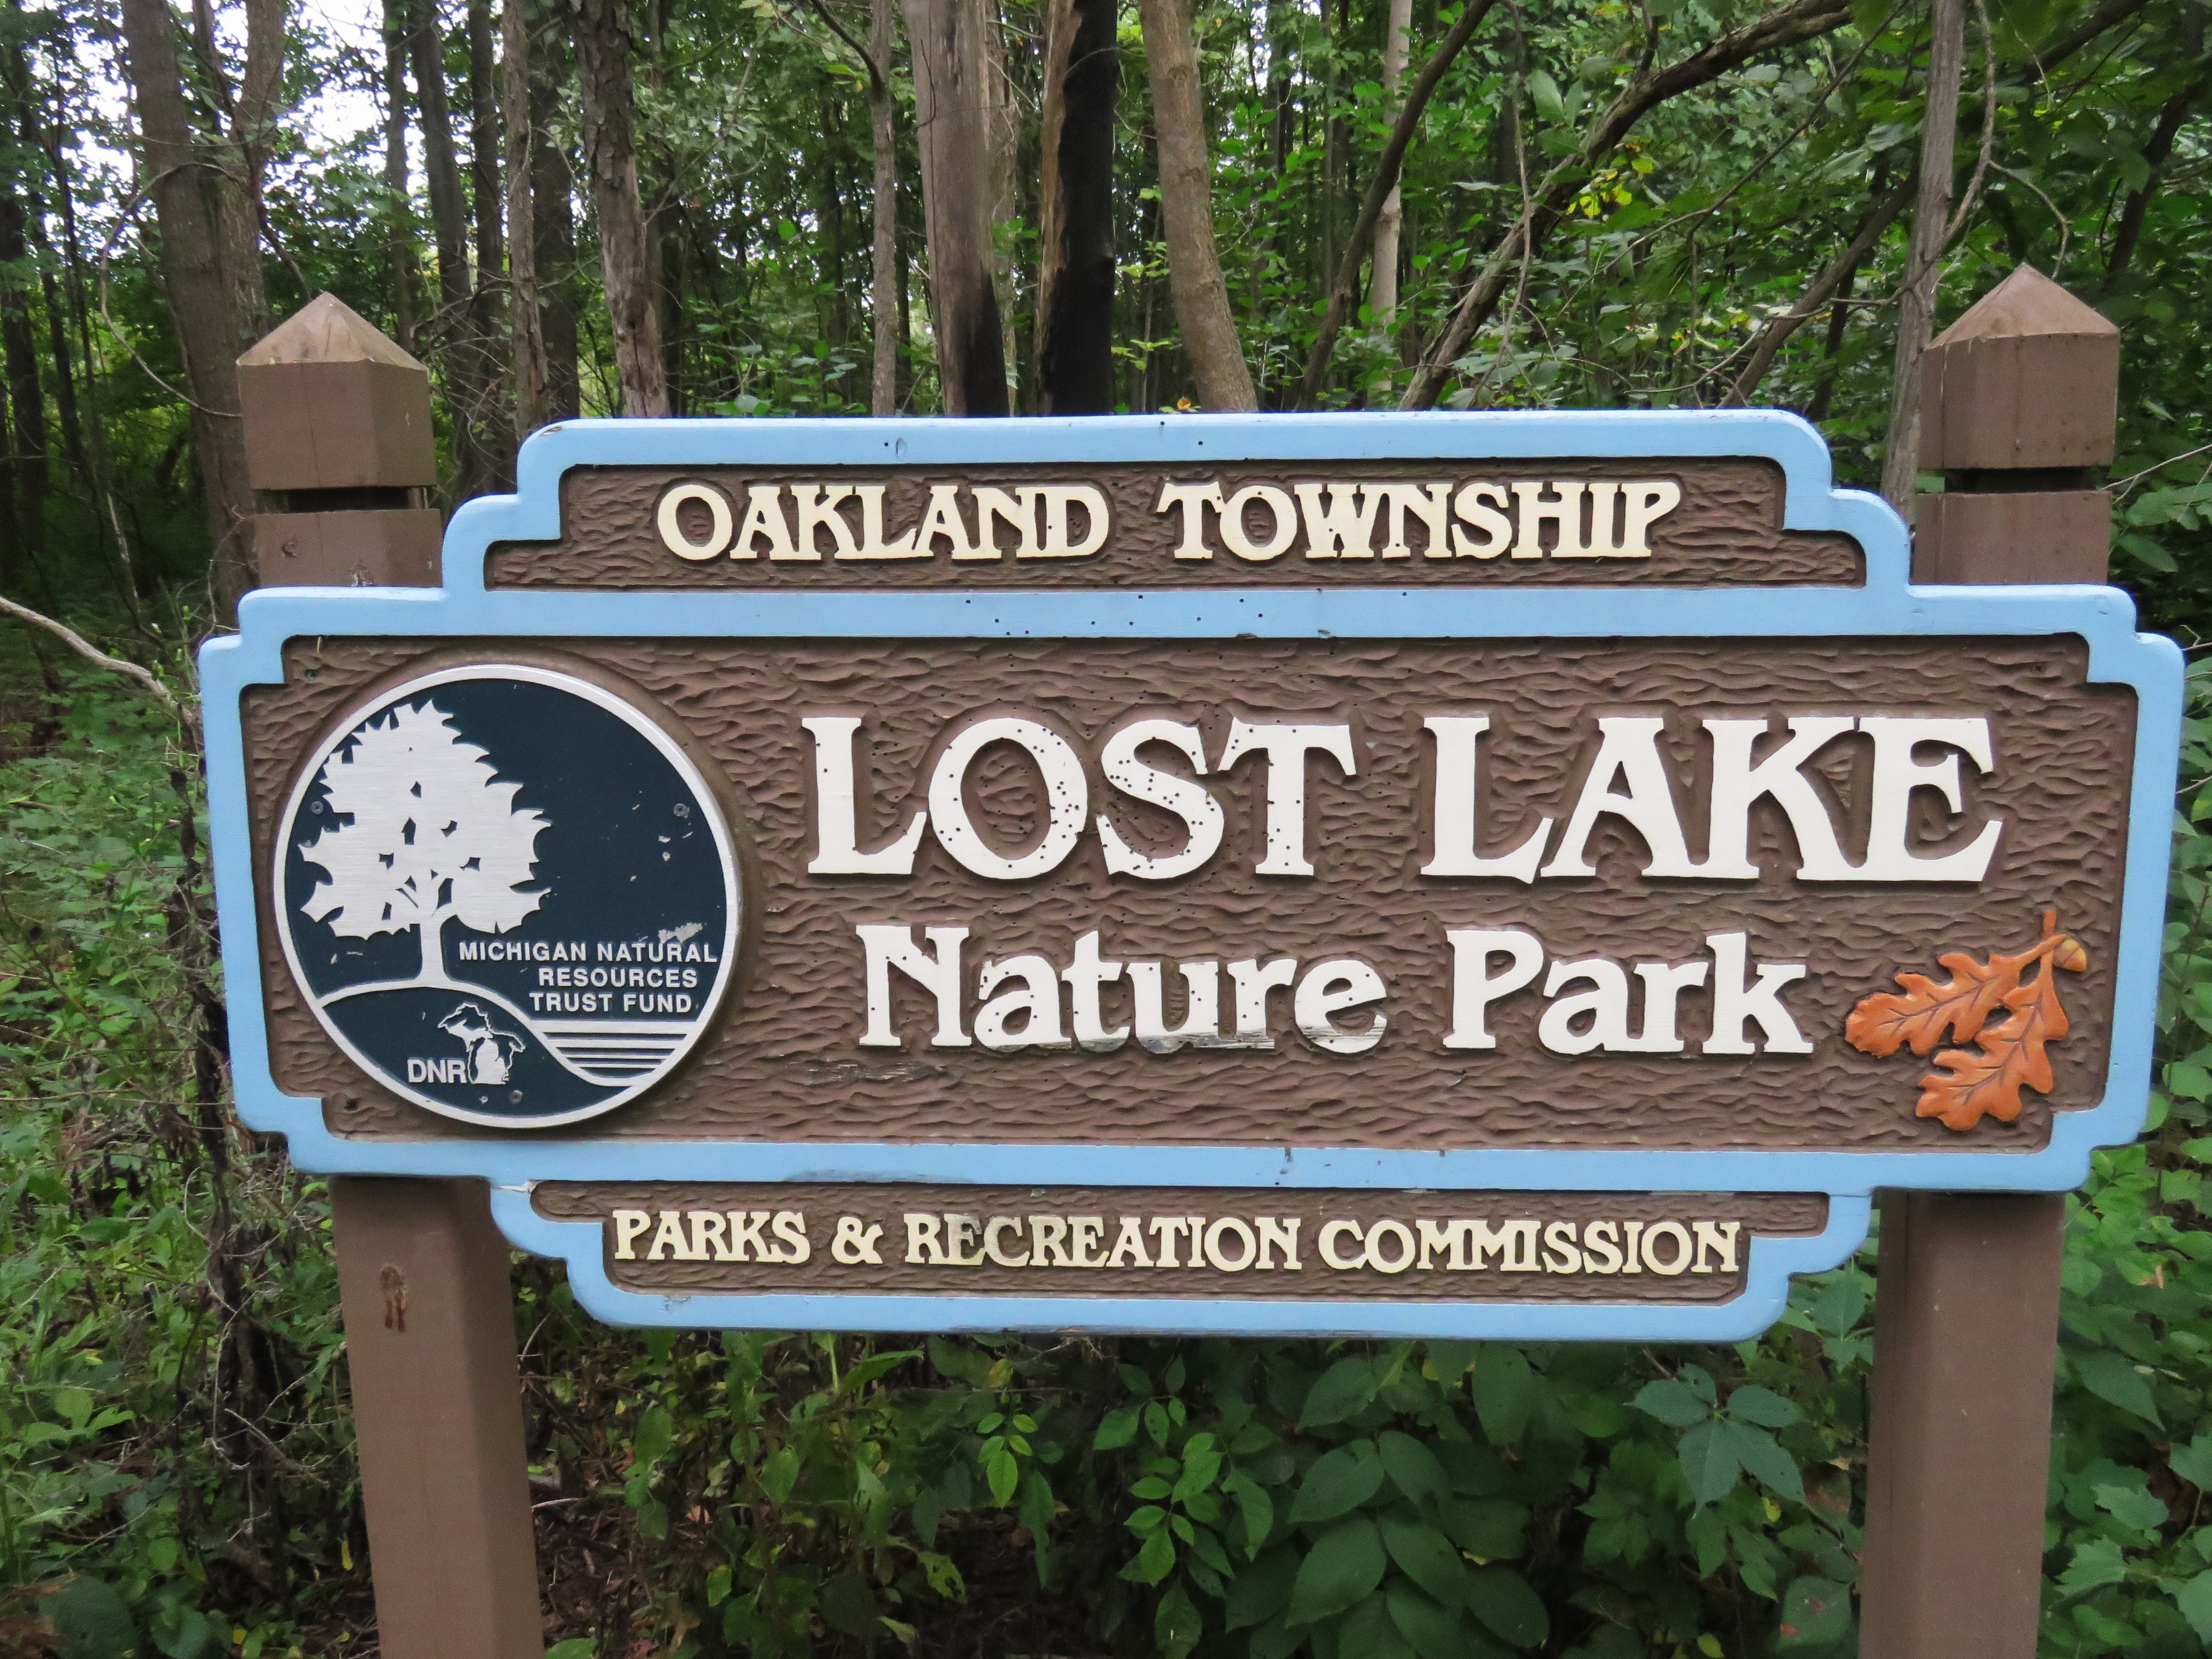 A brown wooden sign stands in front of trees and plants with green foliage. The sign says: Oakland Township - Lost Lake Nature Preserve - Parks and Recreation Commission. It has the seal for Michigan Natural Resources Trust Fund to the left of the text. Two rust colored Oak leaves have been placed to the right of the text.